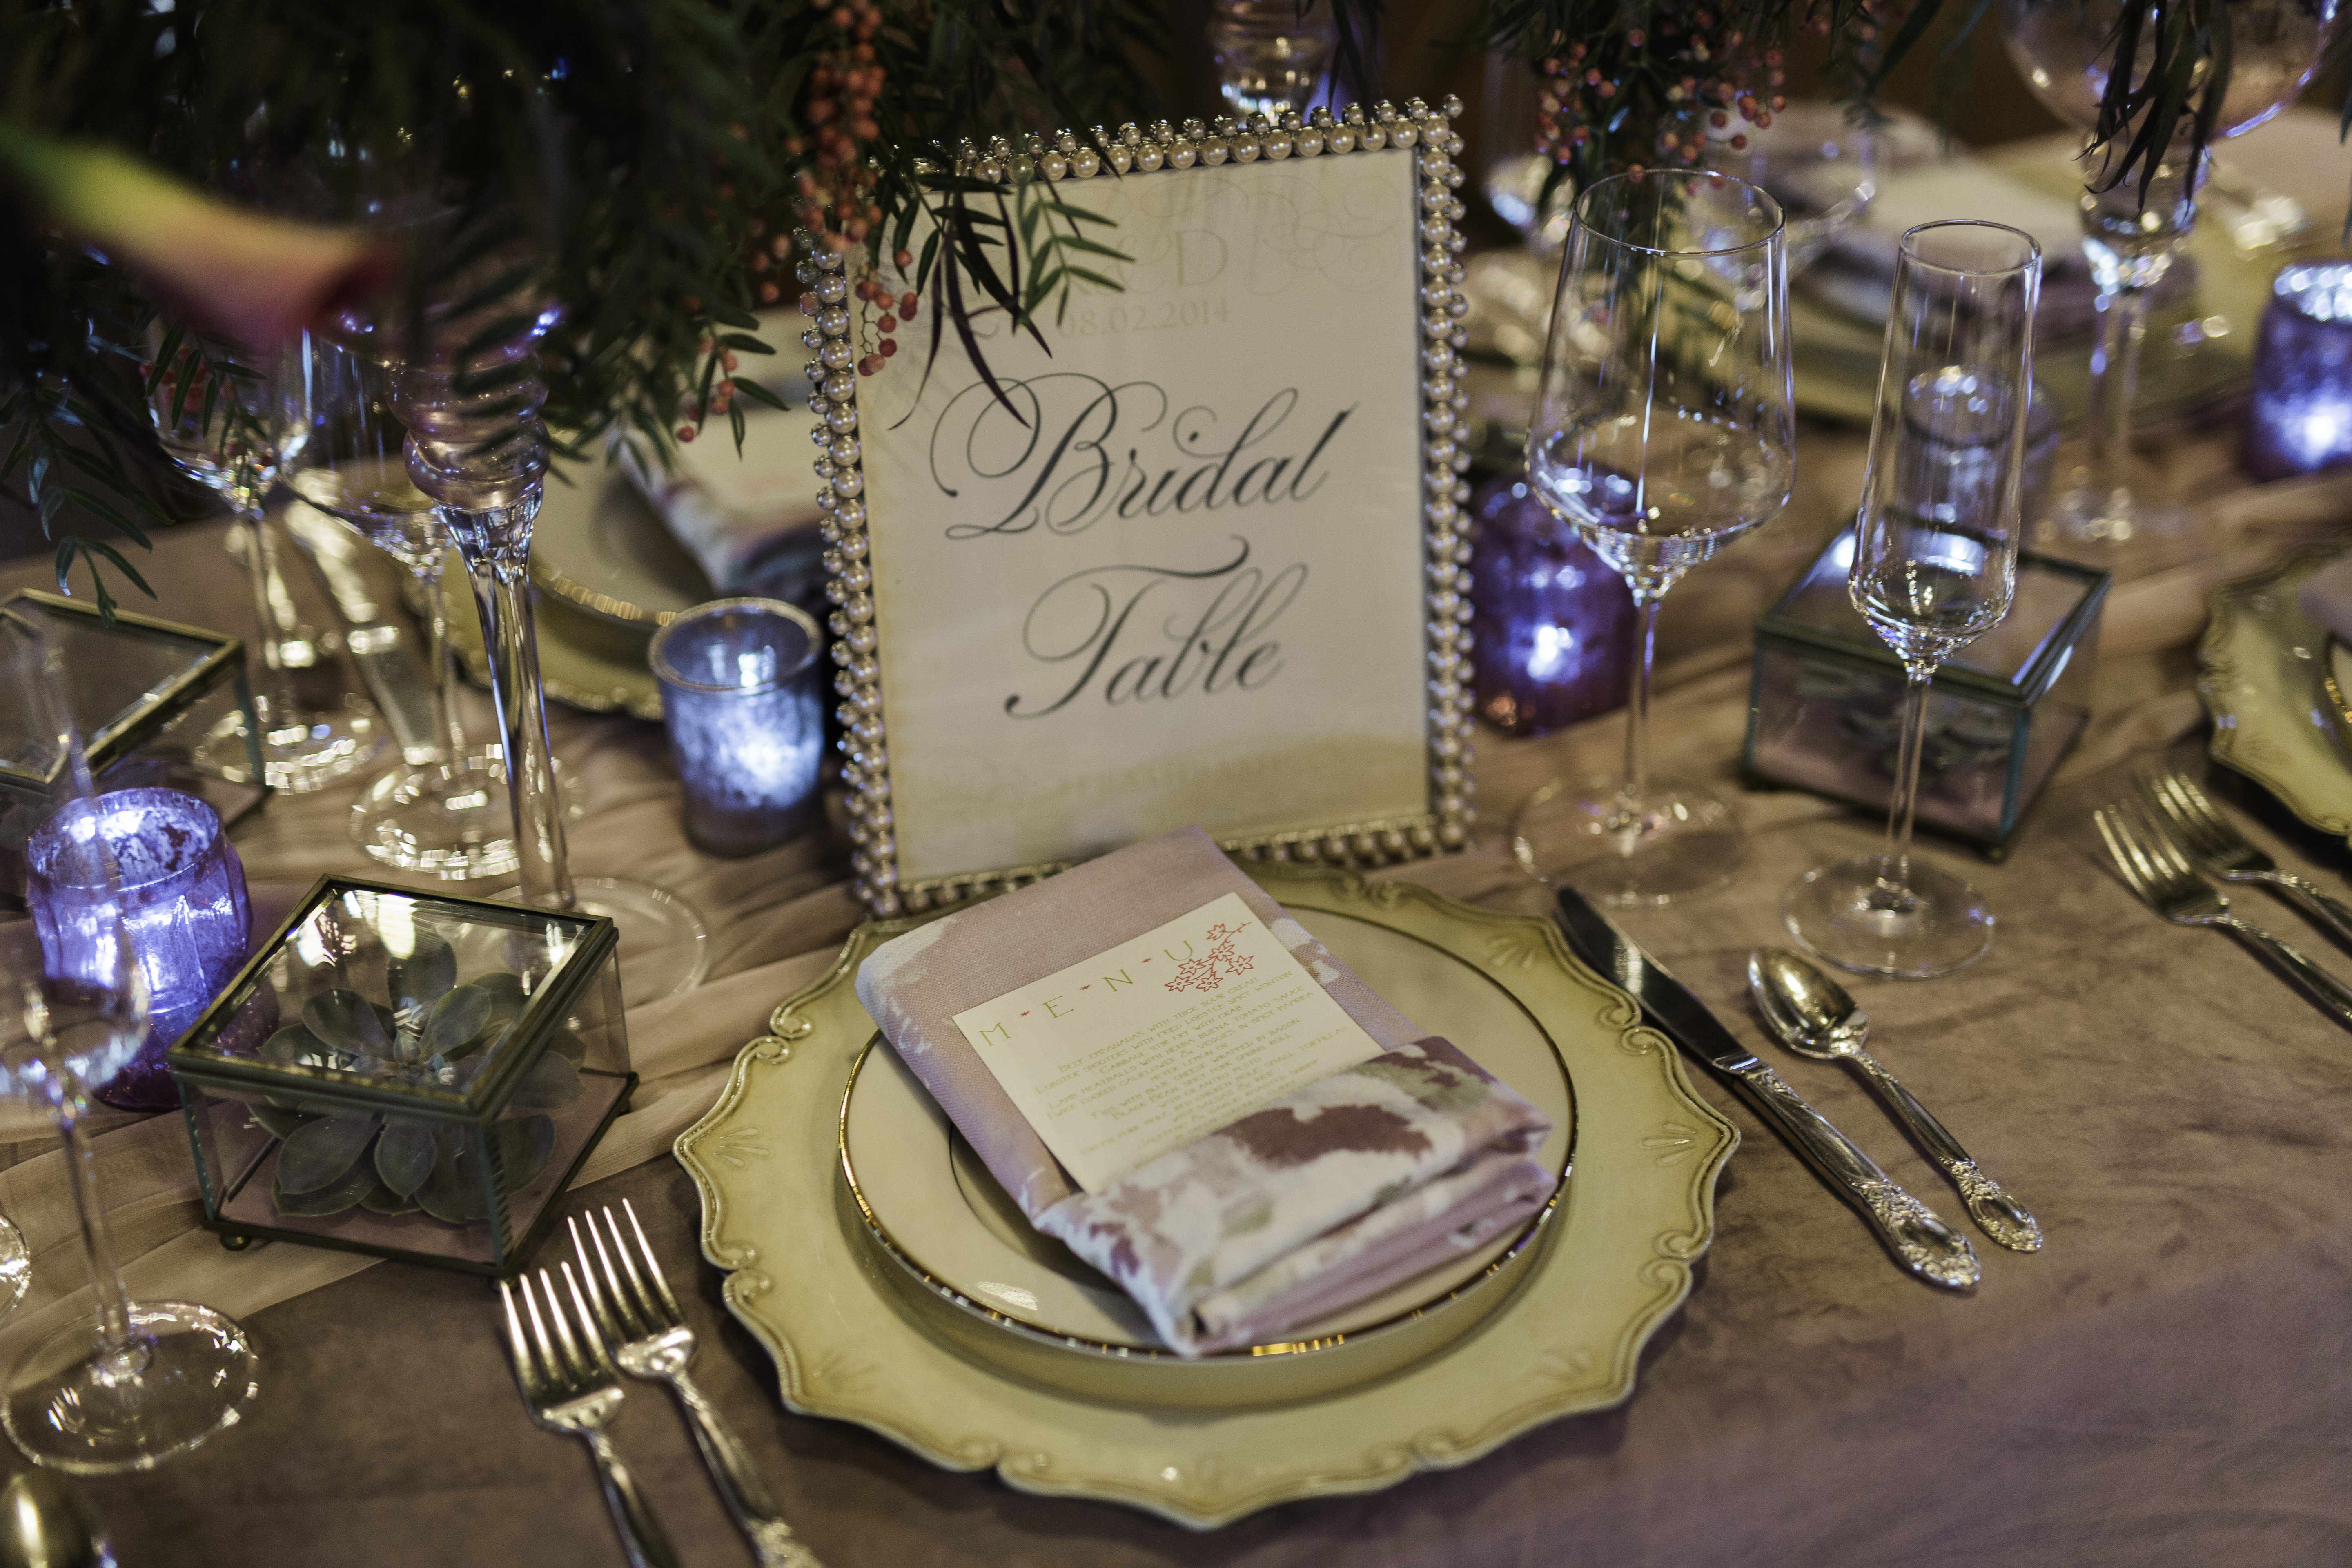 Bridal table place setting